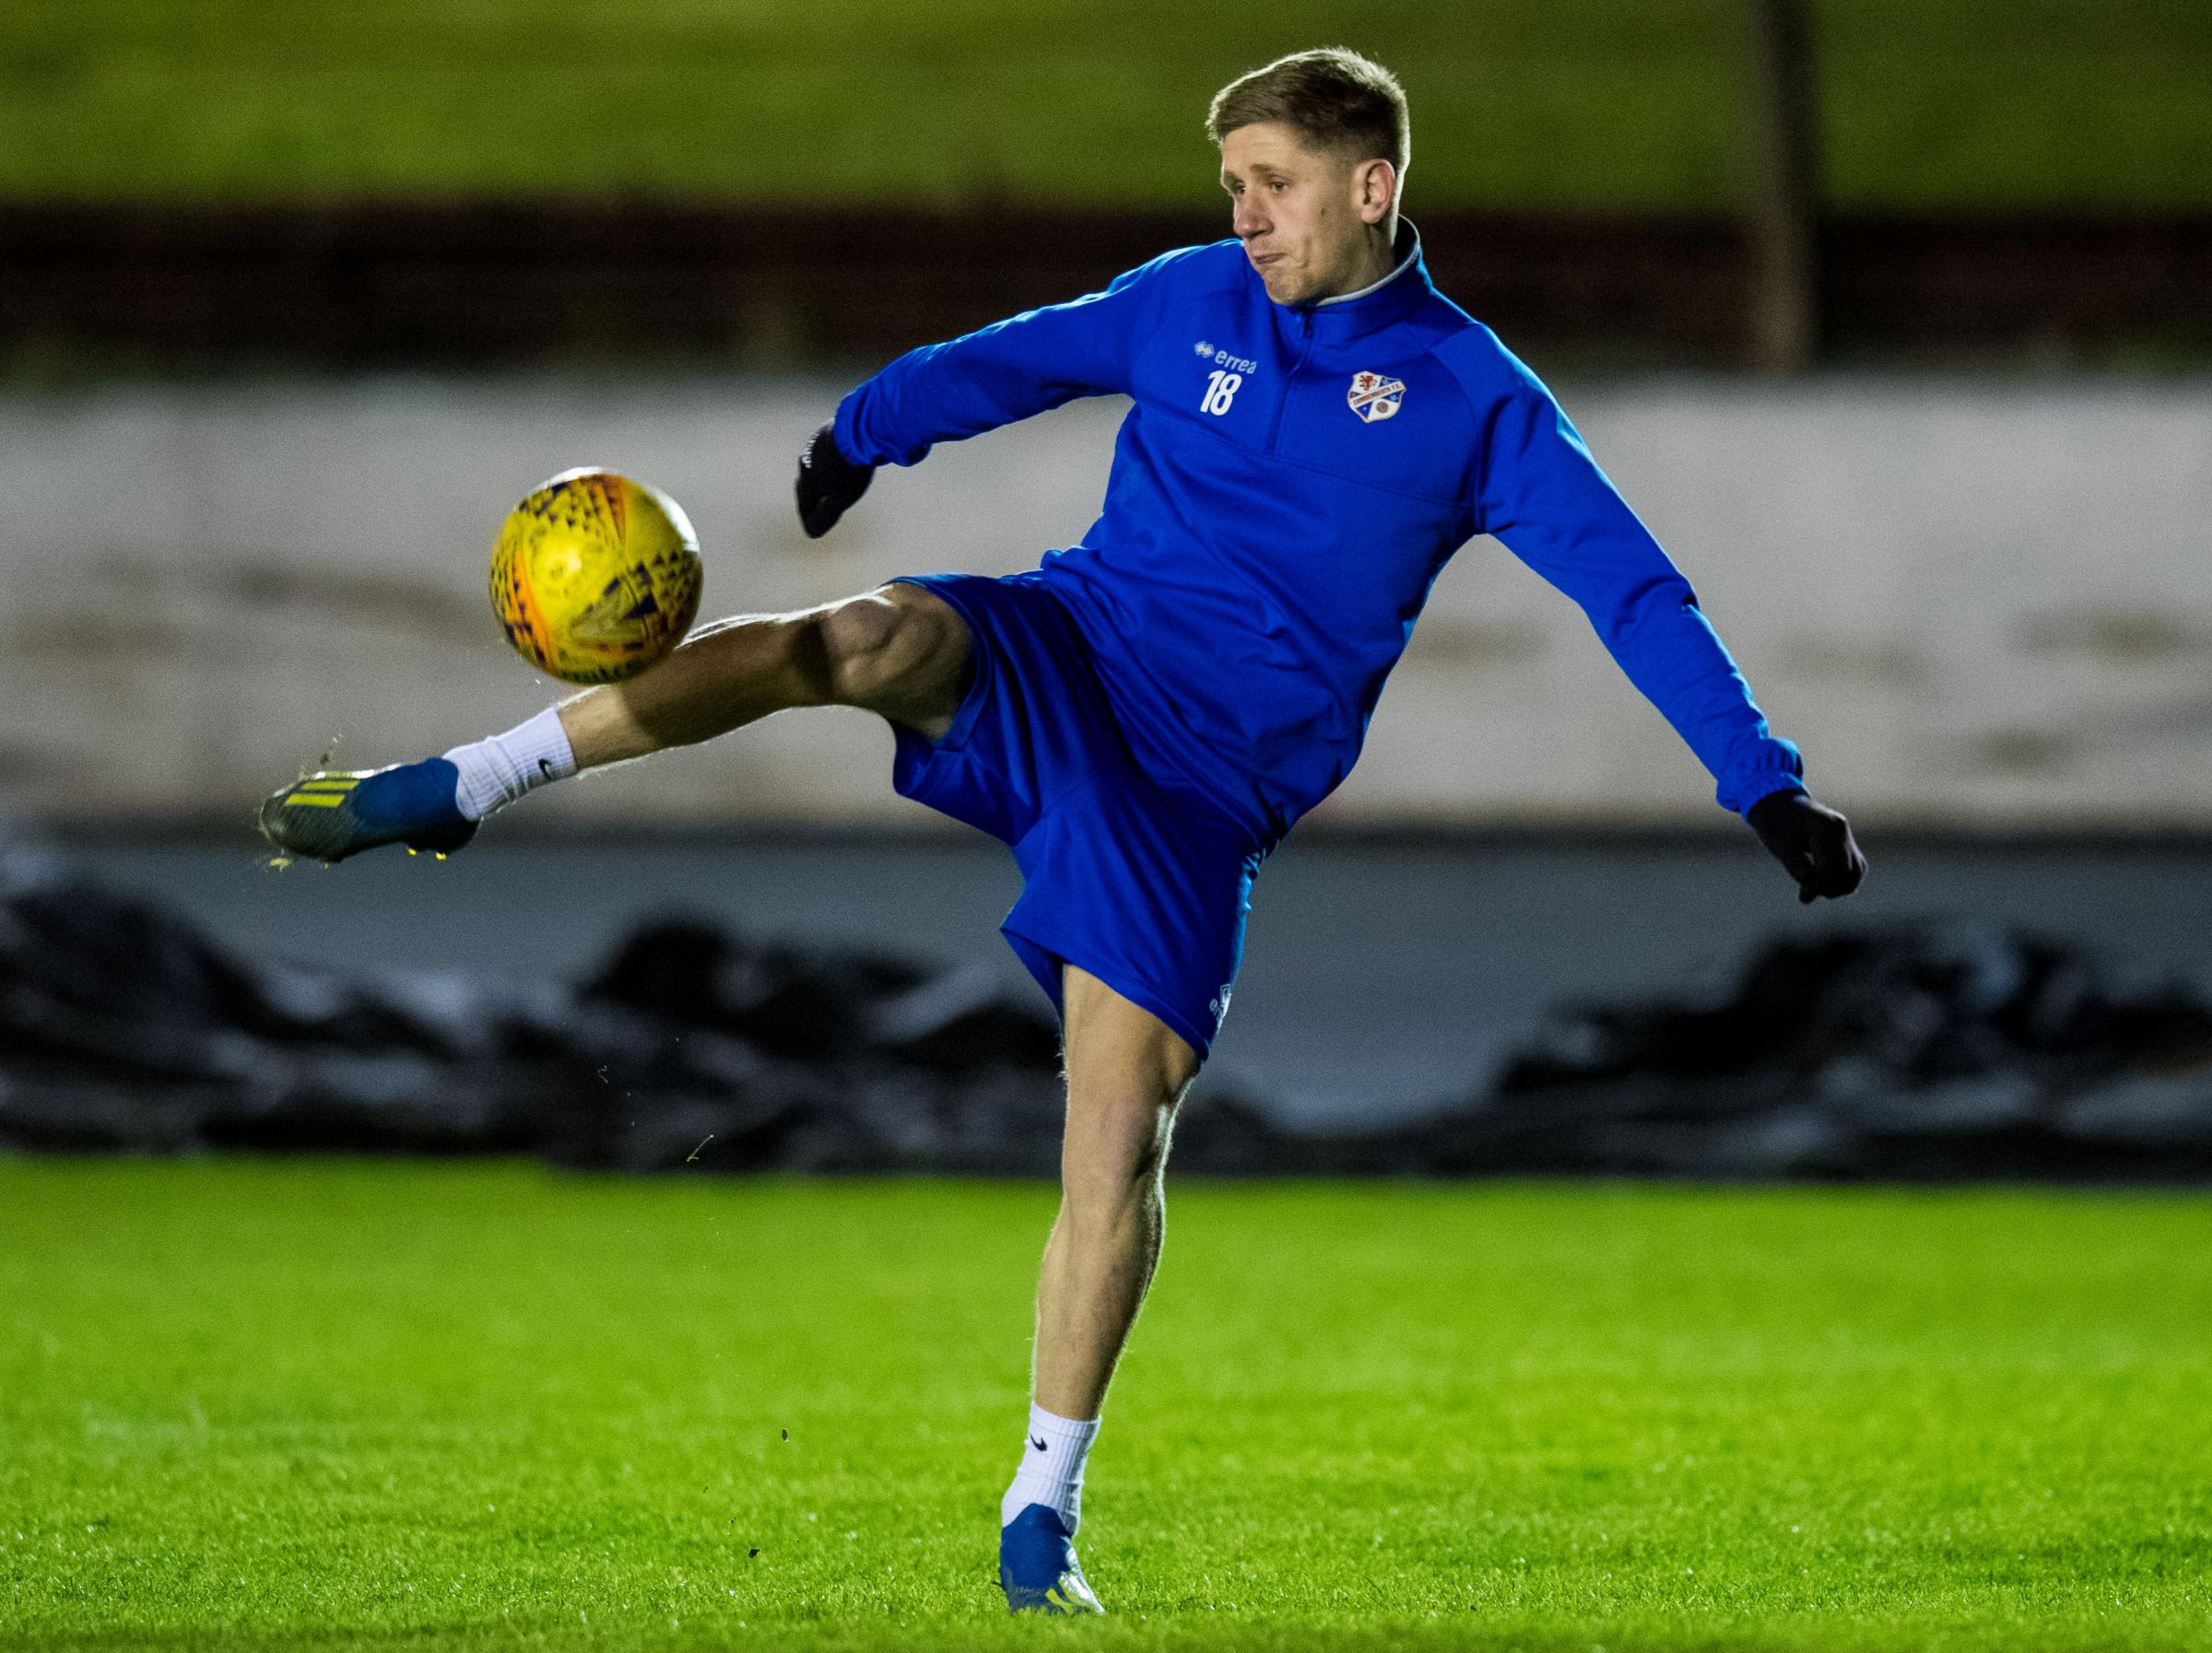 Cowdenbeath's Robbie Buchanan is determined to enjoy tonight's game against Rangers